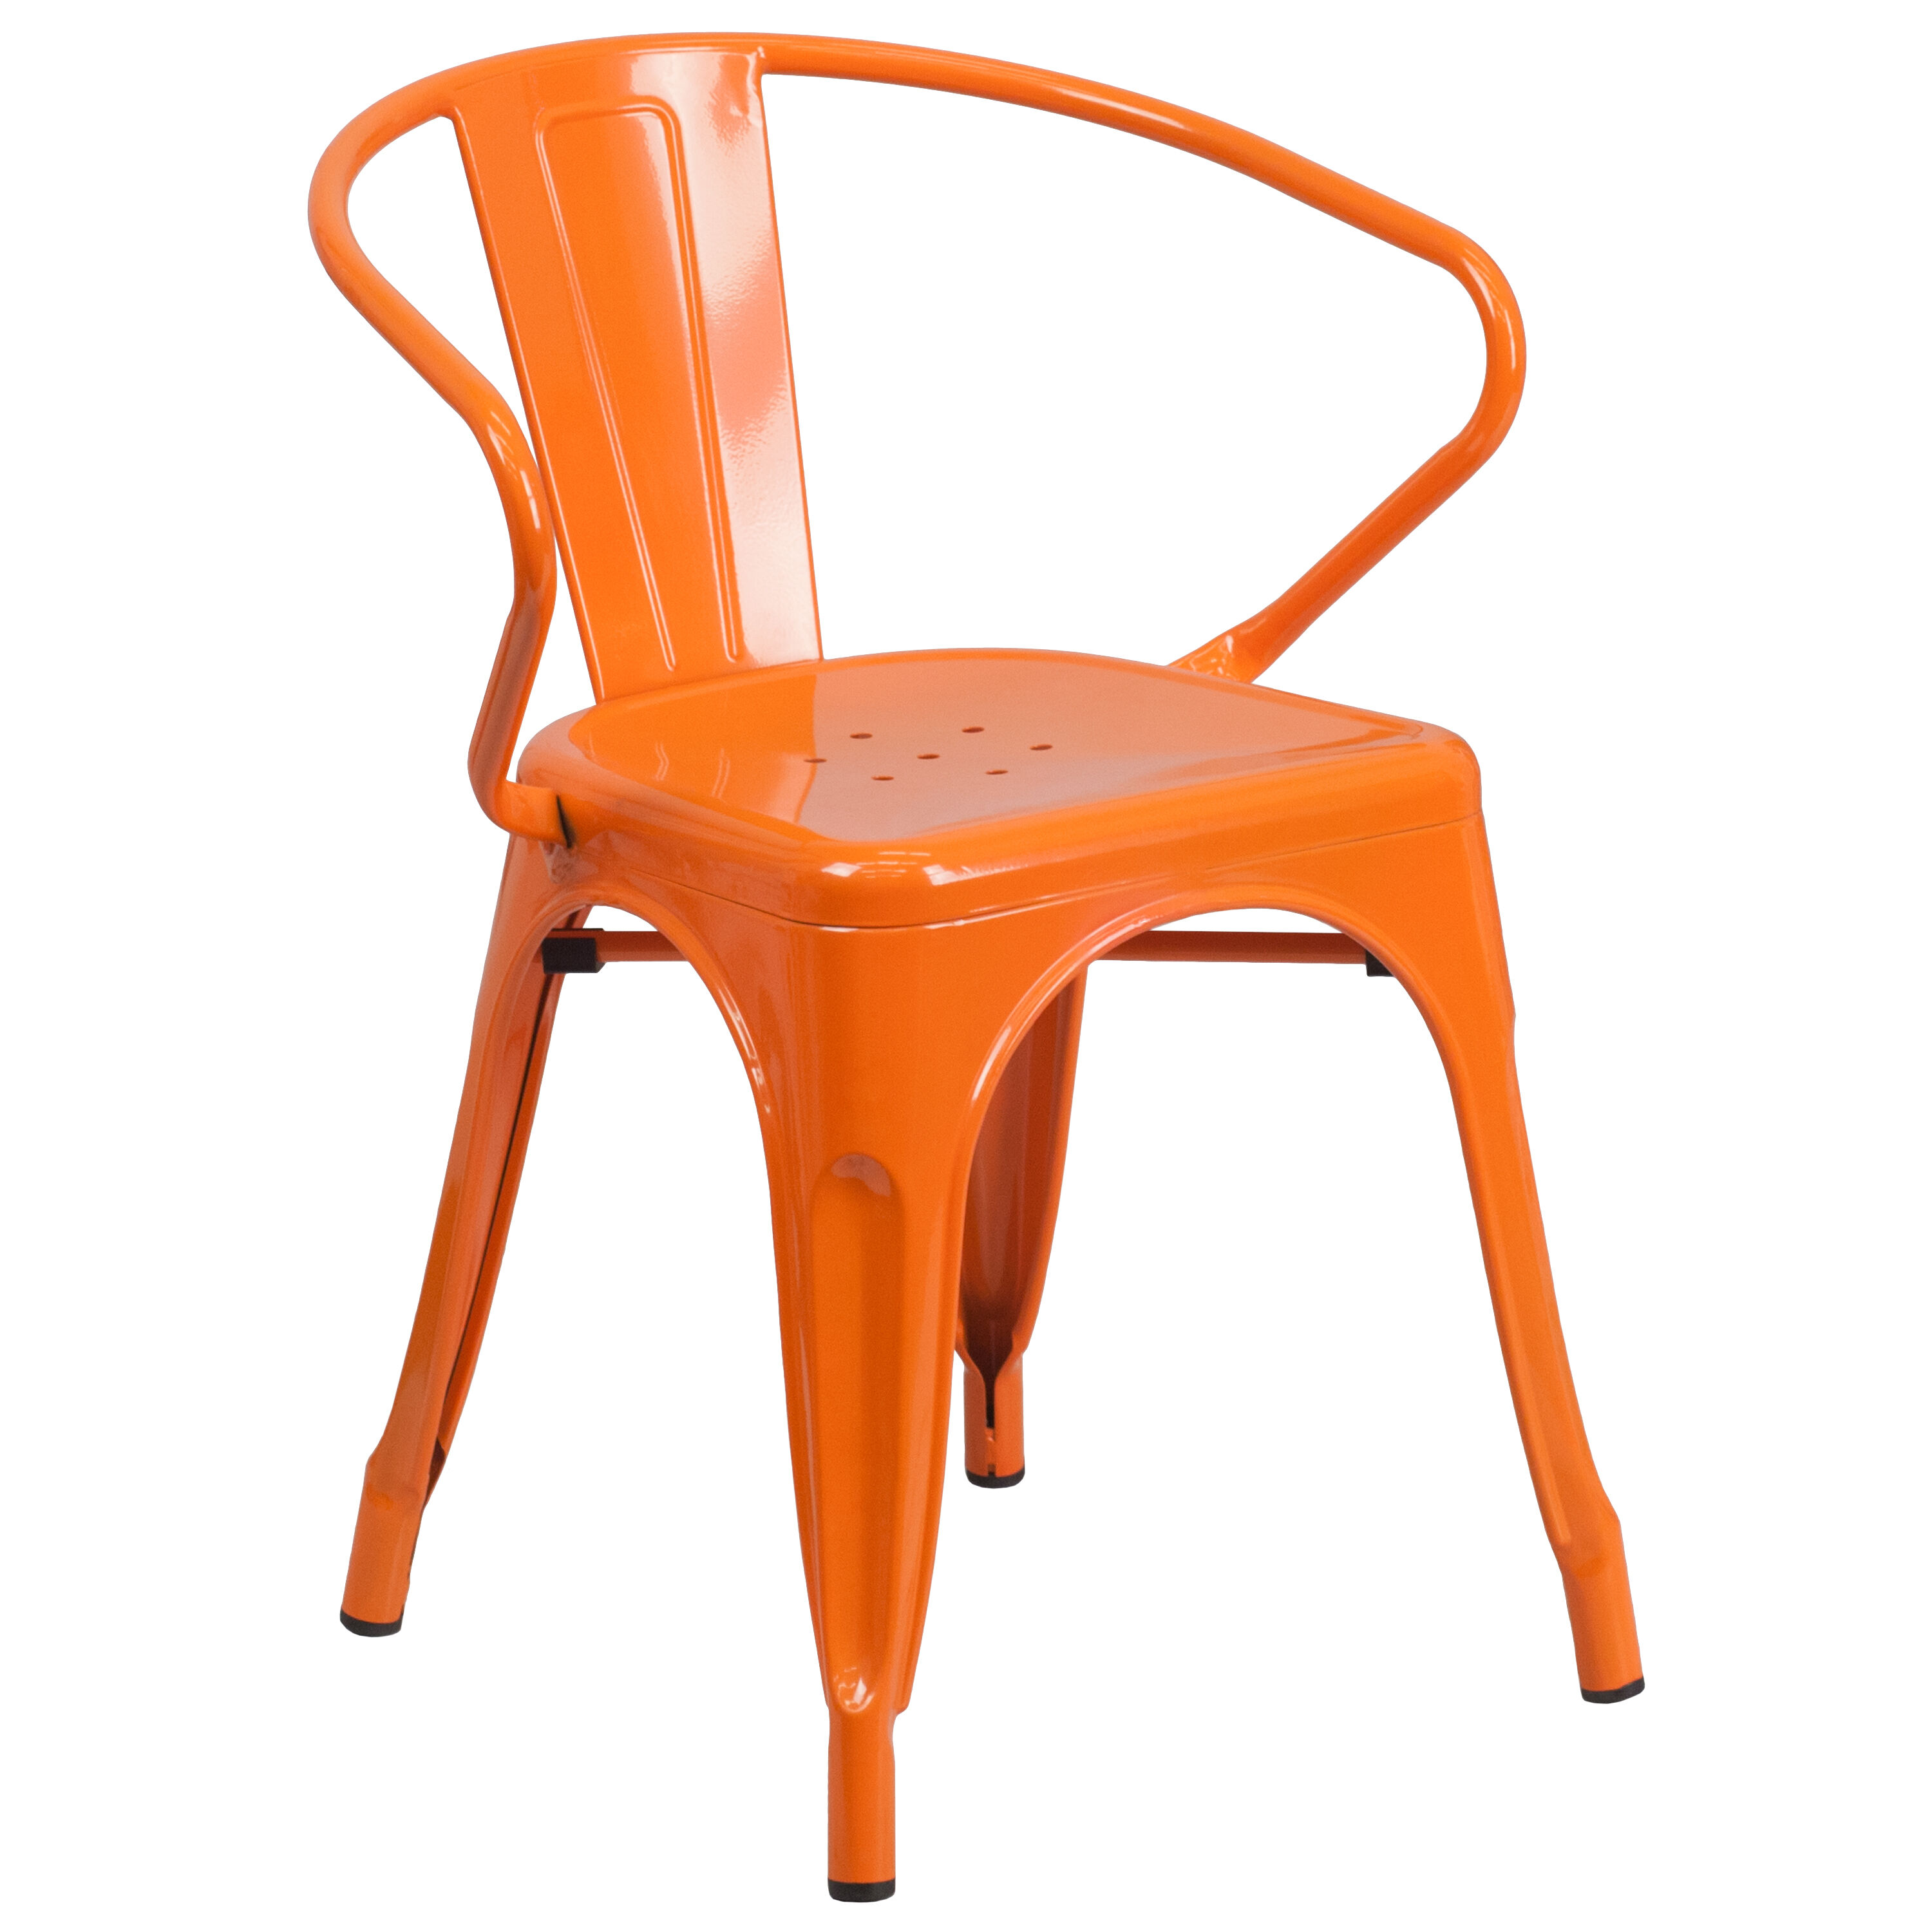 indoor outdoor chairs wooden office chair no wheels churchchairs4less furniture orange metal with arms